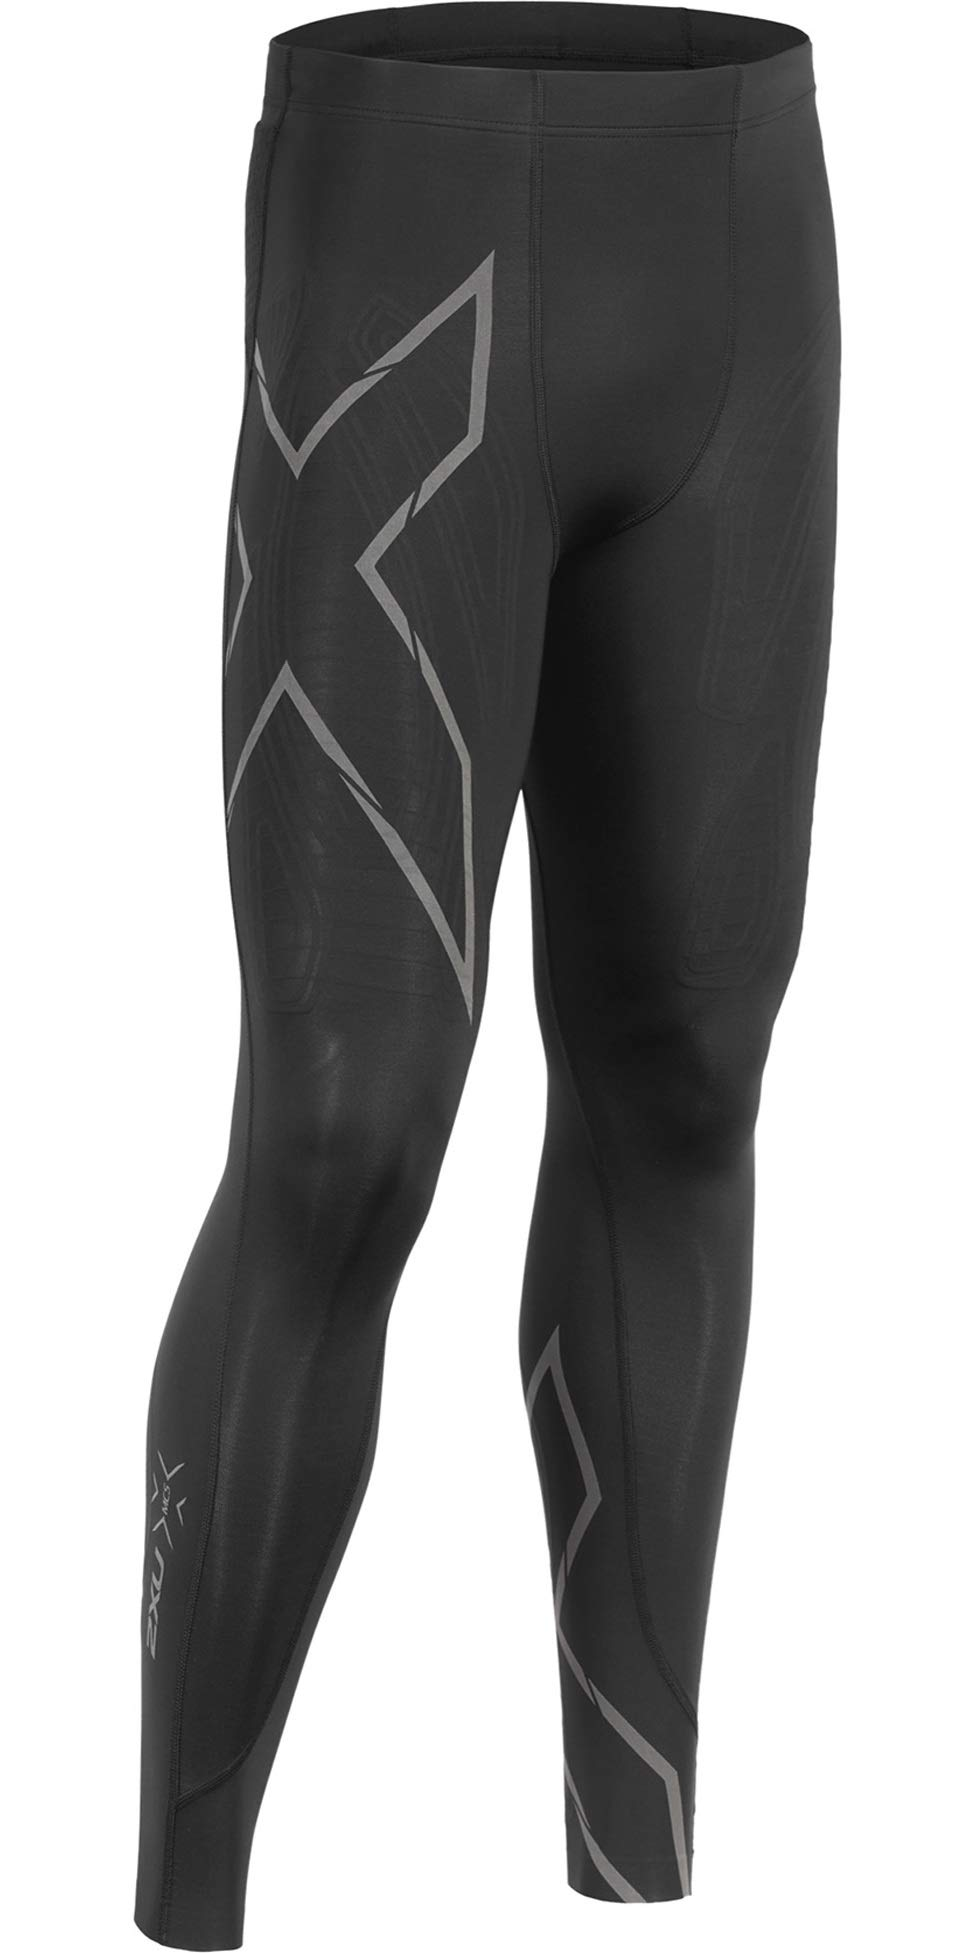 2XU MCS Run Compression Tight, Black/Black Reflective, Medium by 2XU (Image #1)